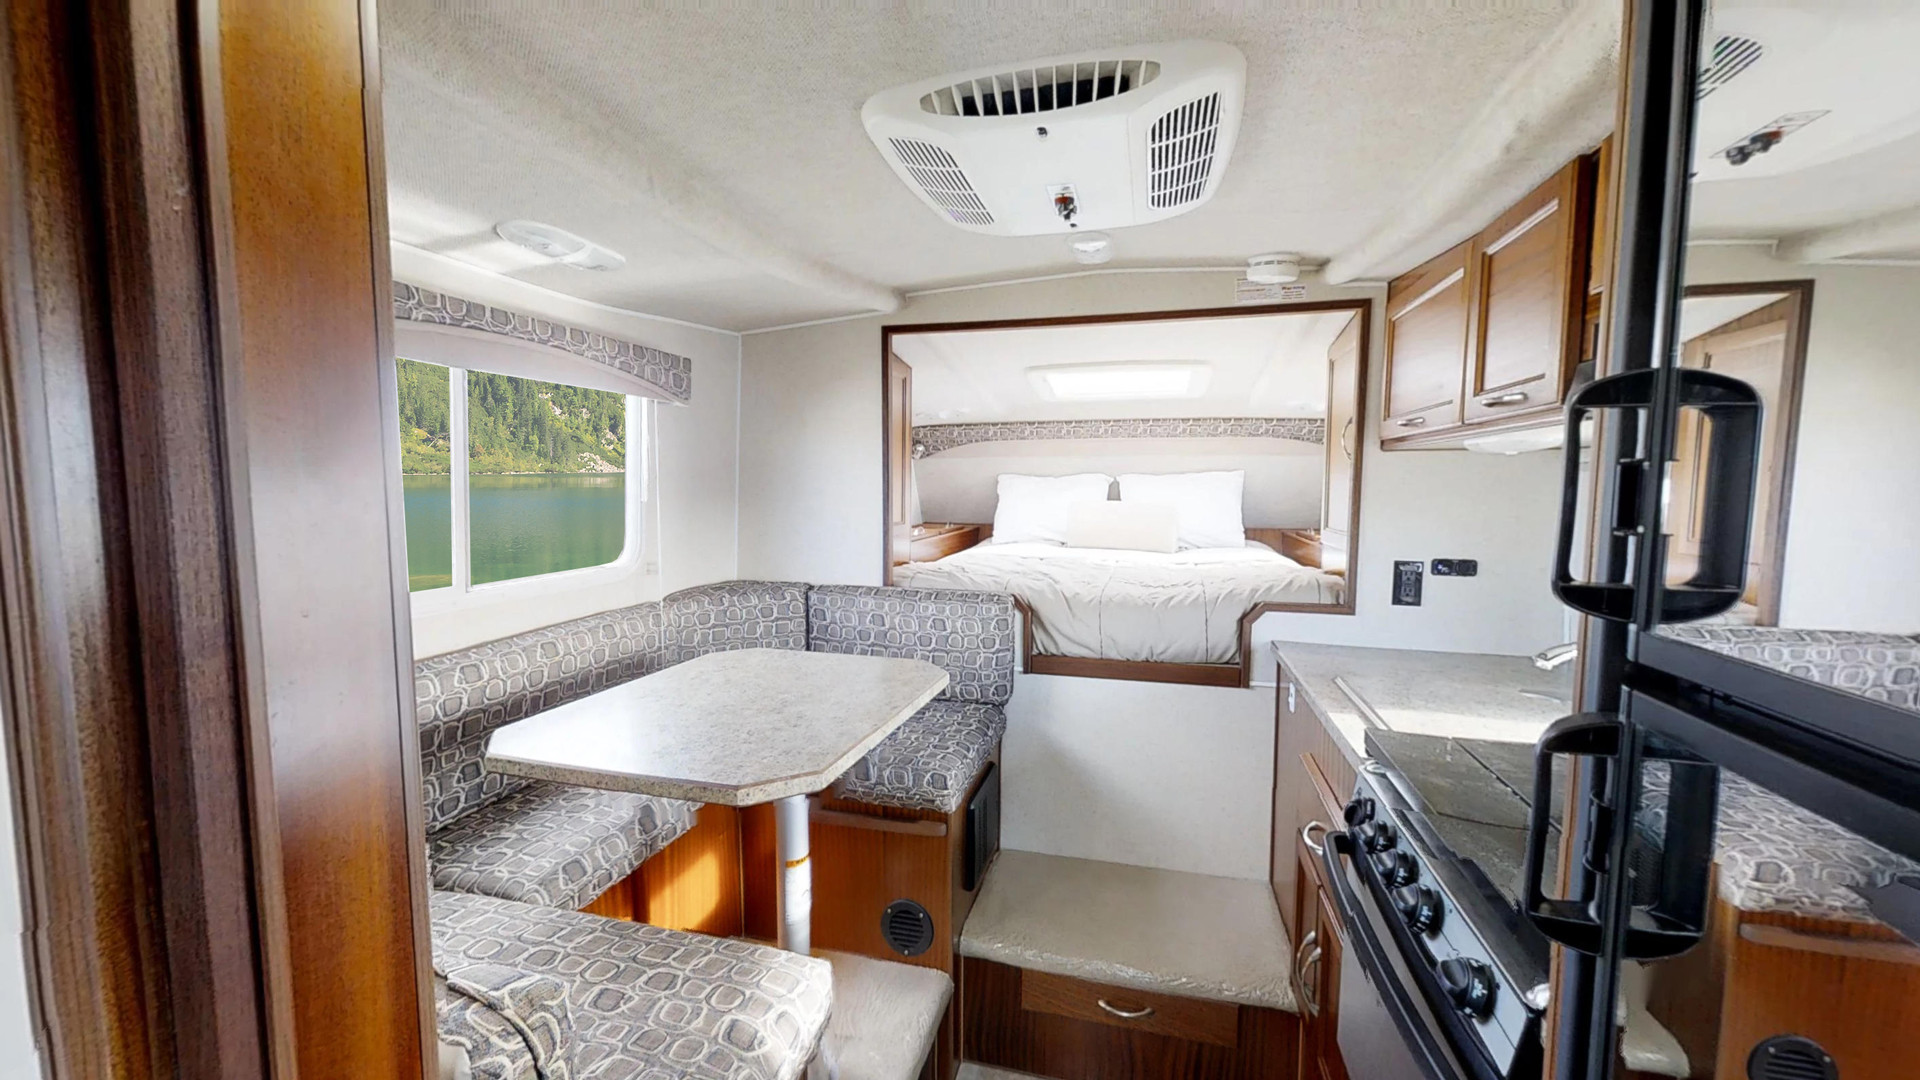 CanaDream: RV rentals in Ontario | The kitchen and sleeping area inside one of CanaDream's vehicles